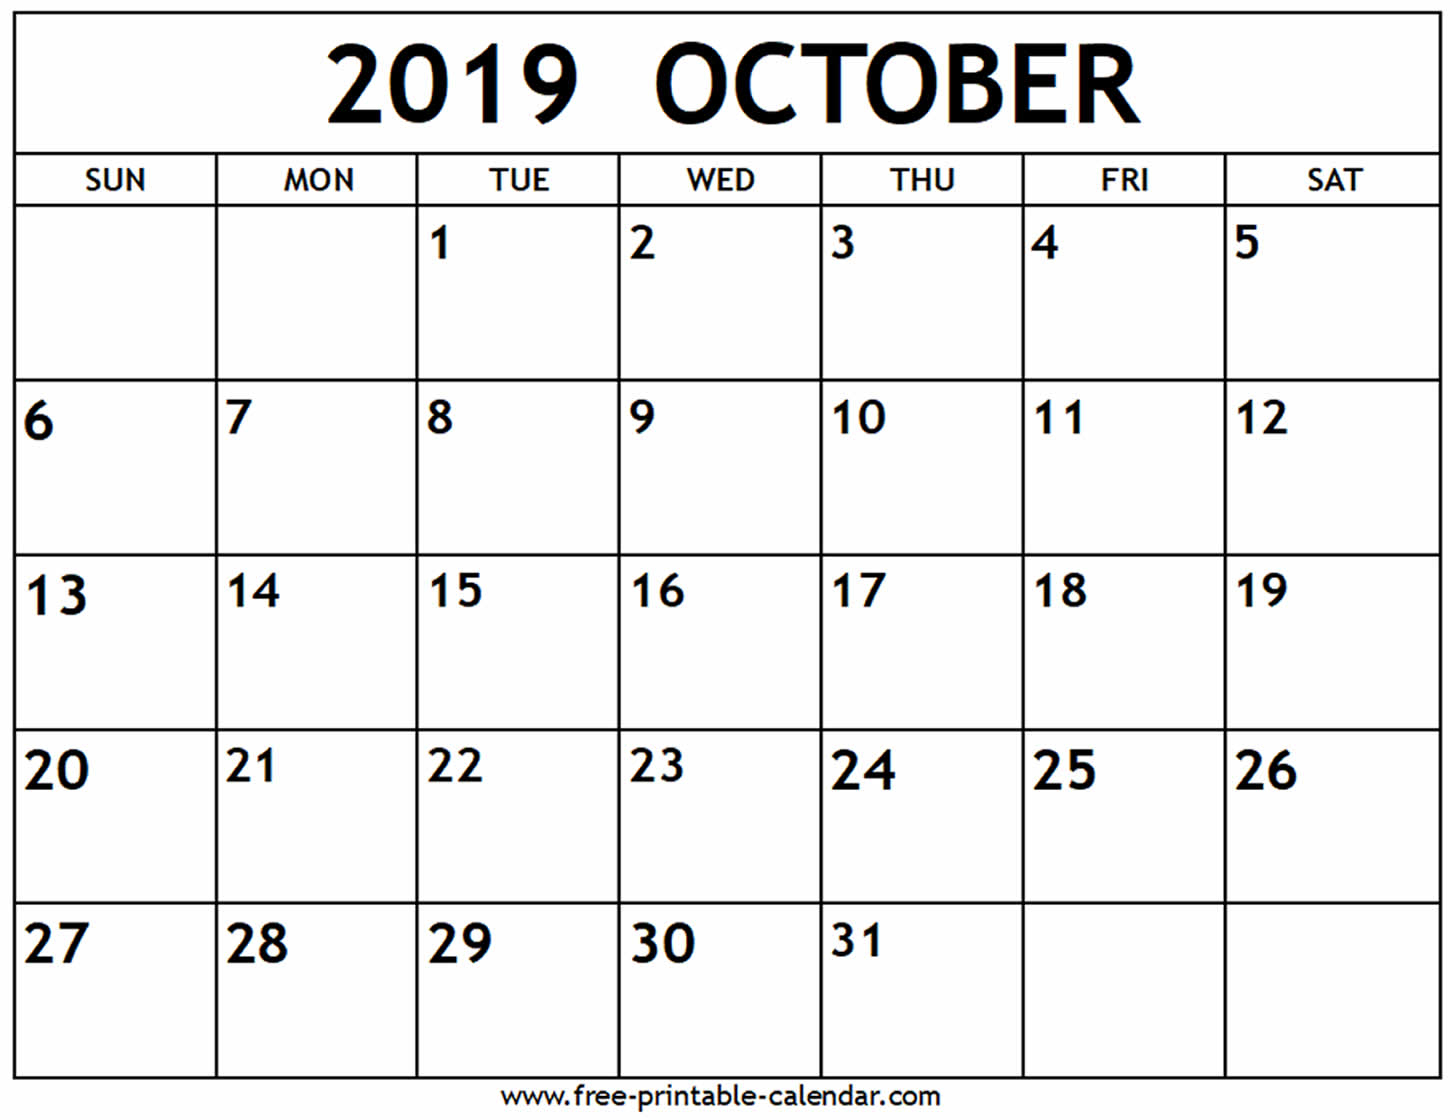 October 2019 Calendar - Free-Printable-Calendar pertaining to Calendar October 2019 Australia Images